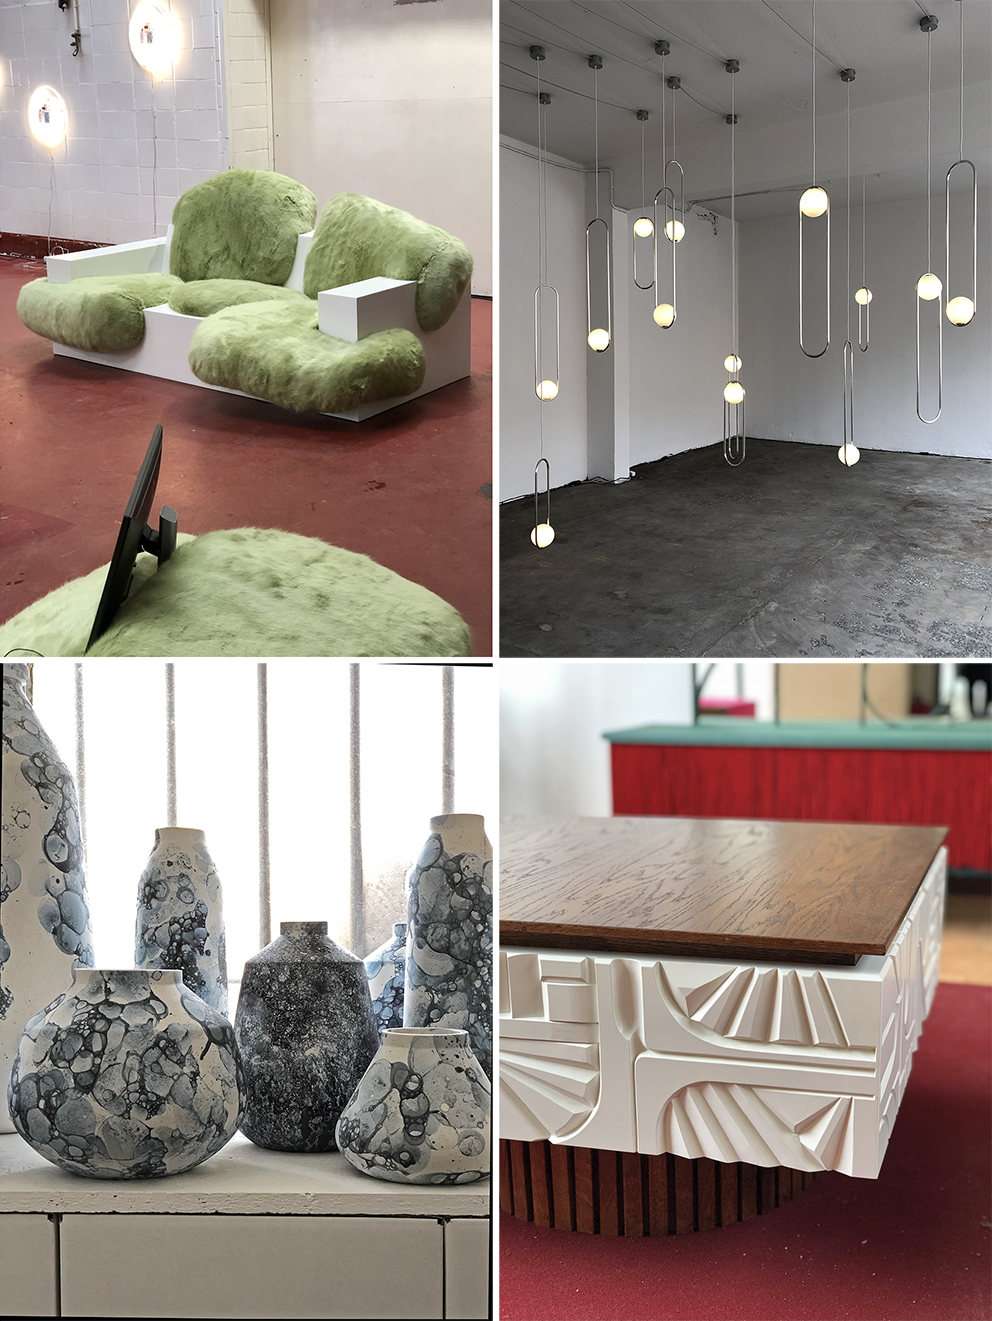 French For Pineapple Blog - Milan Design Week 2019 Diary Day 5 - Fuorisalone